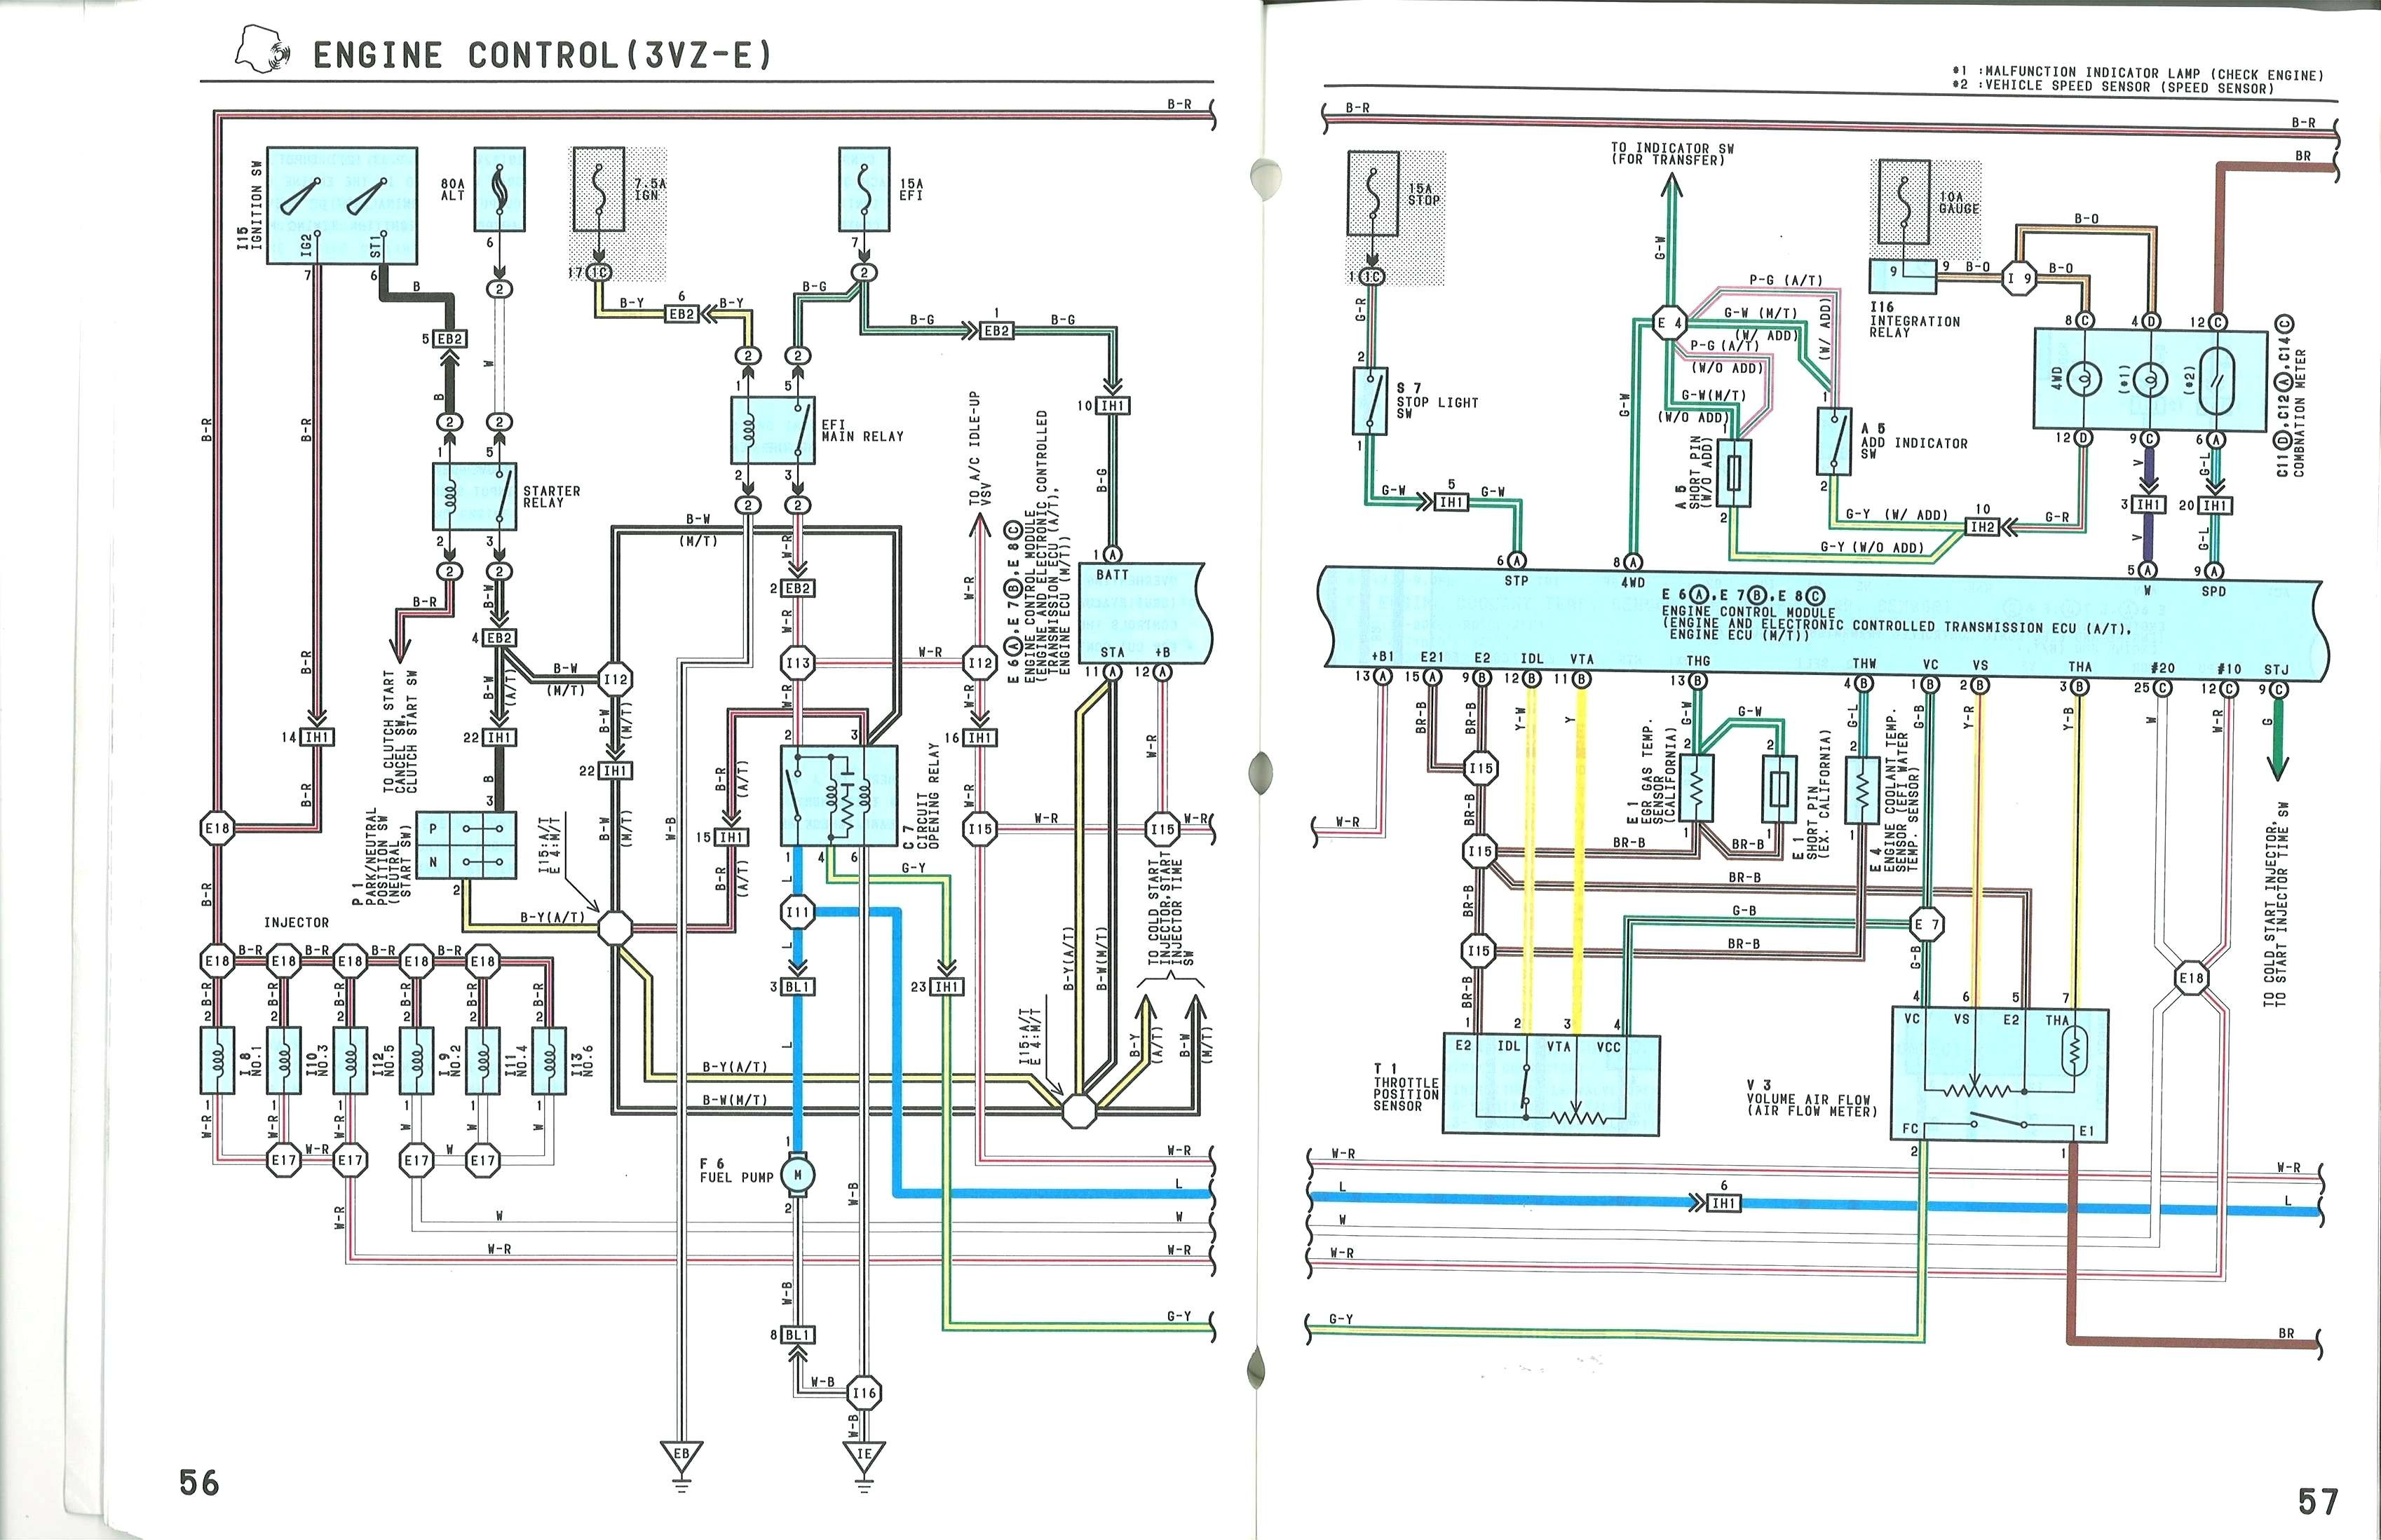 1986 Toyota Pickup 22r Wiring Diagram Solutions Engine 1994 22re Rebuild Diagrams Auto Electrical